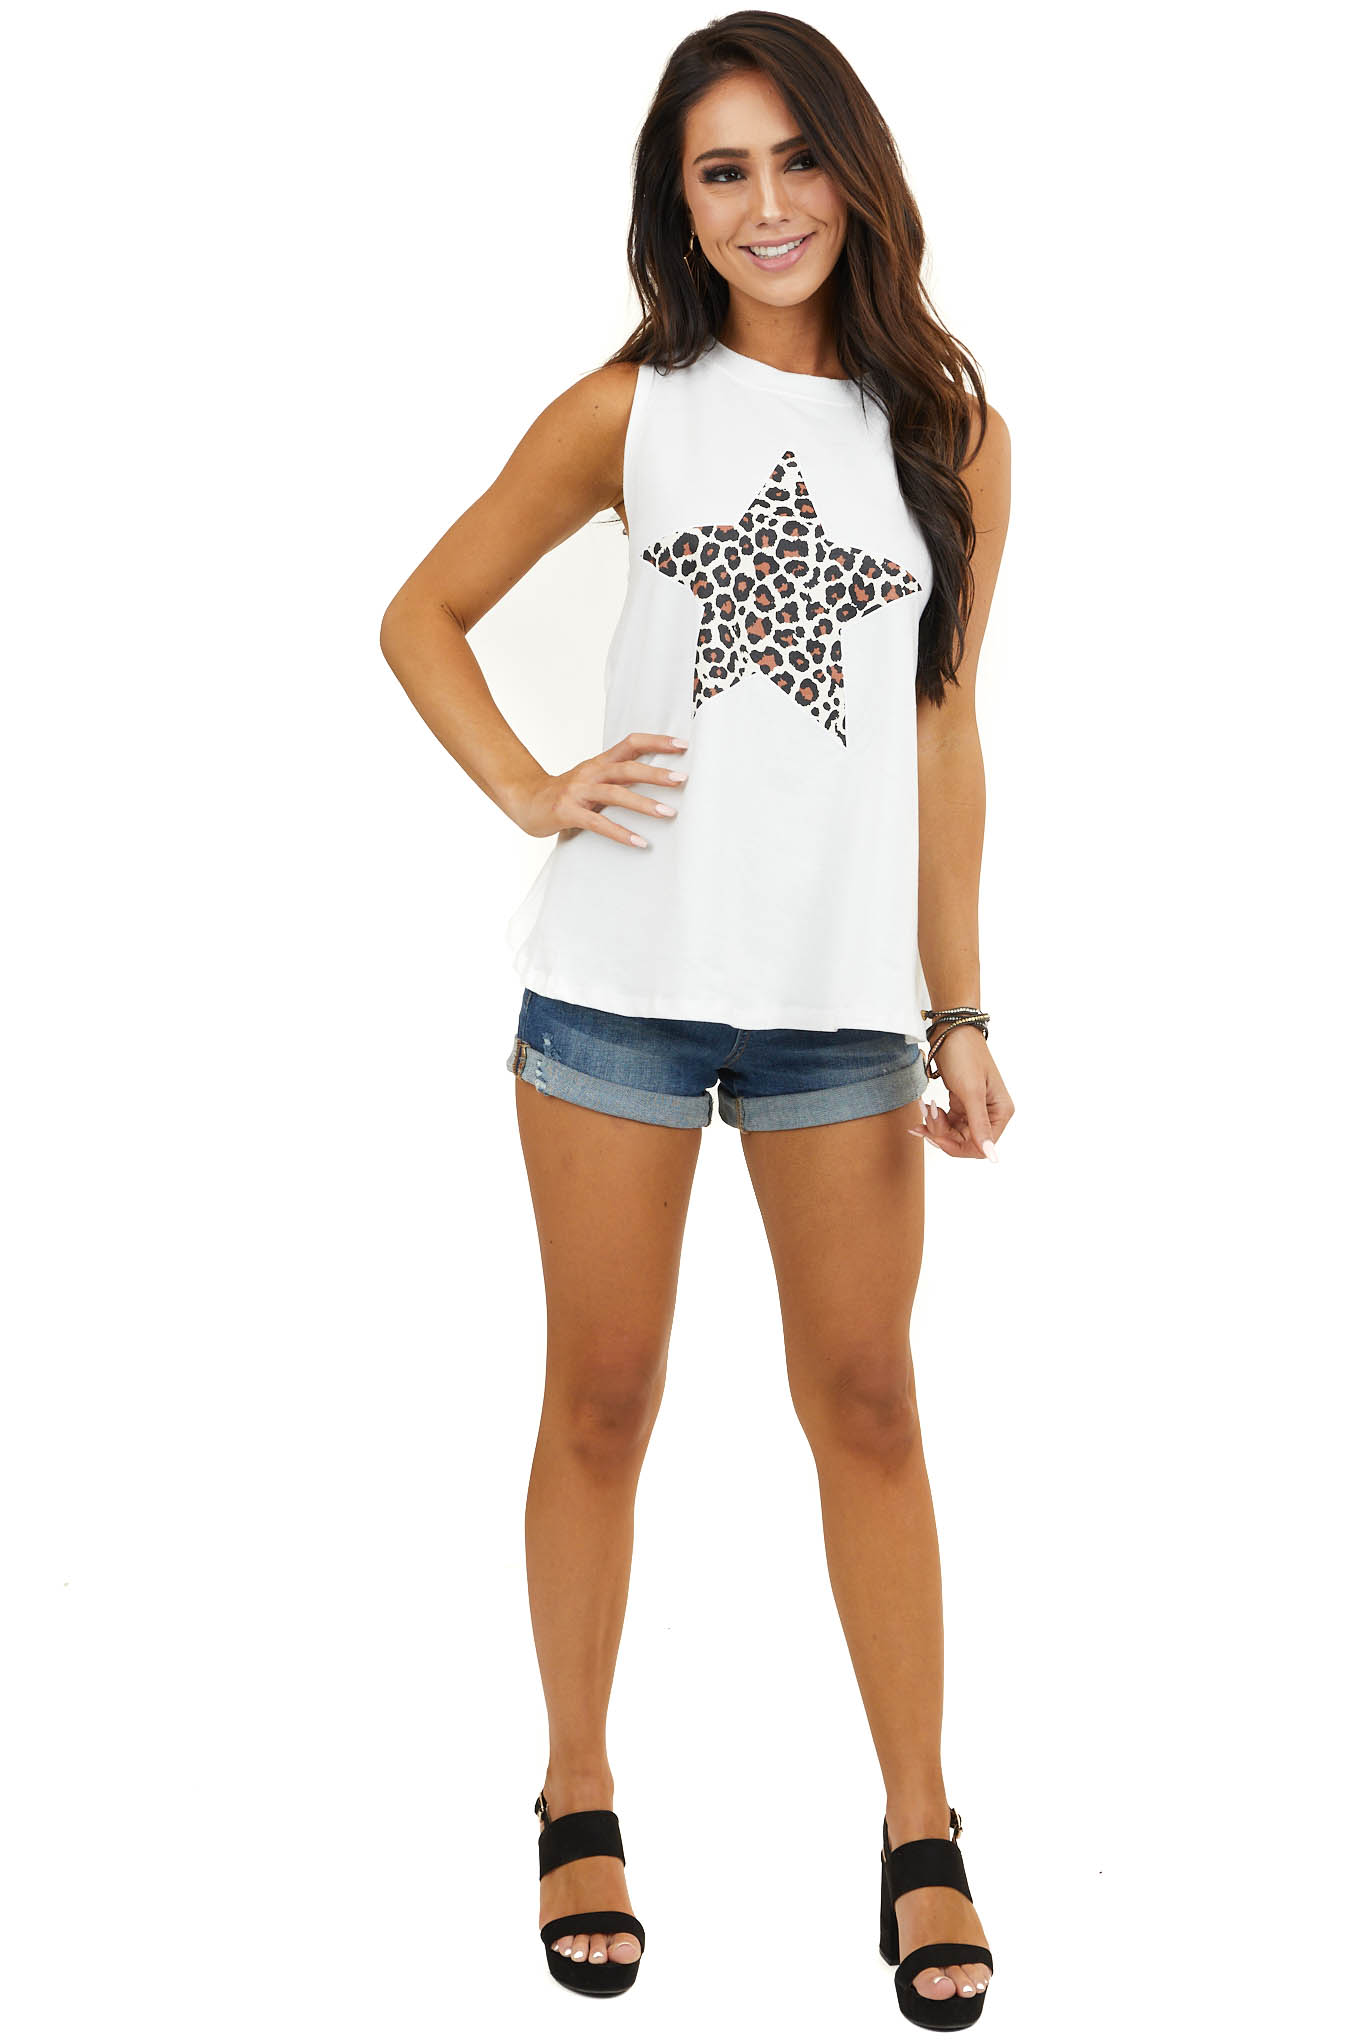 Off White Tank Top with Leopard Print Star Graphic